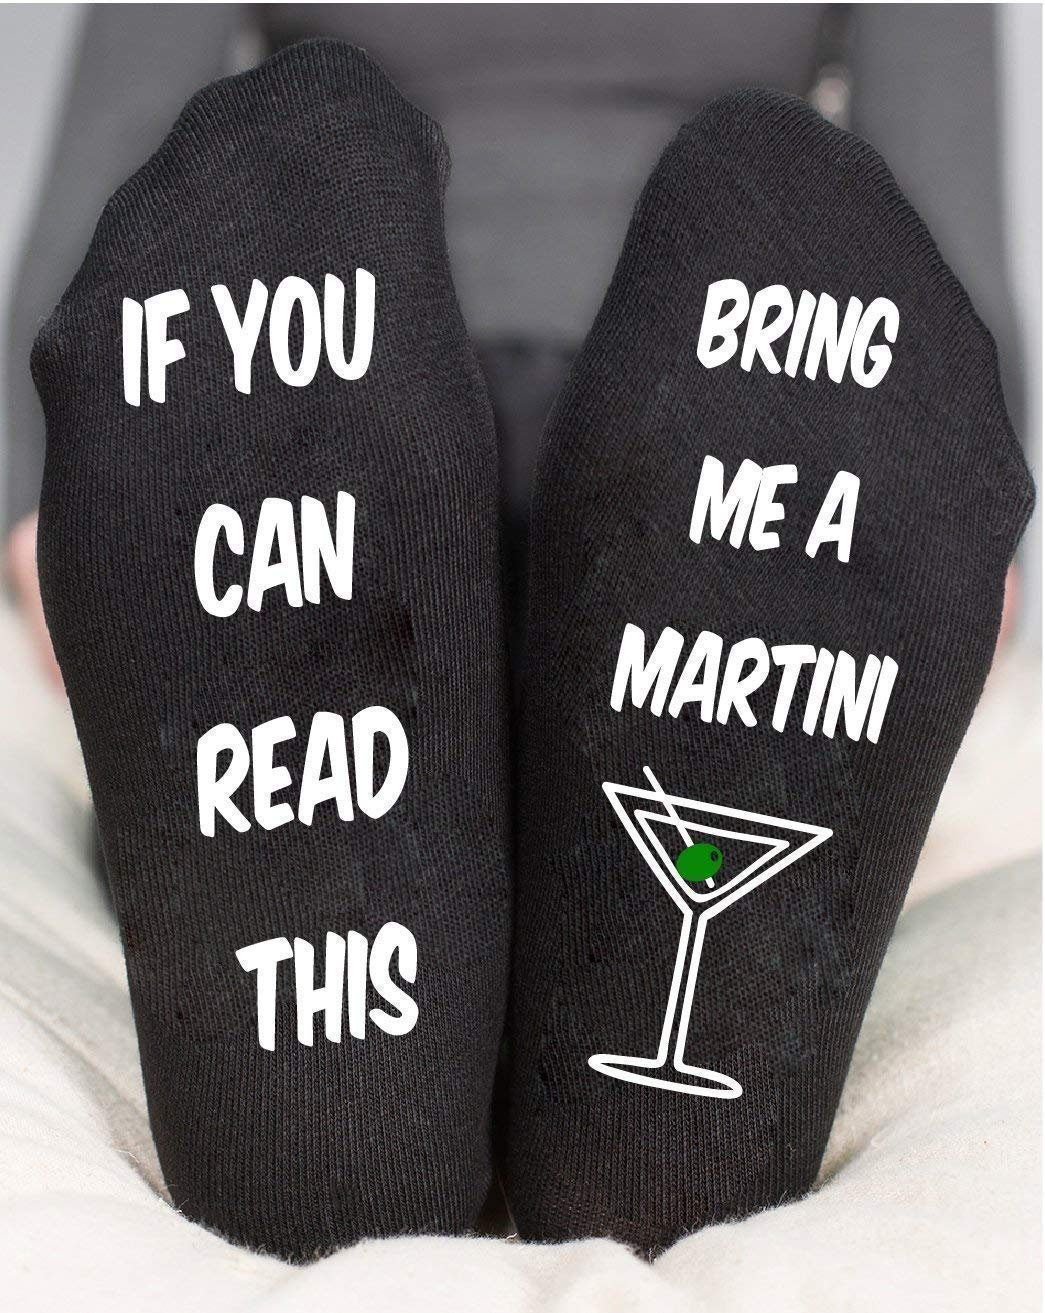 If You Can Read This Martini Socks Funny Birthday Gifts